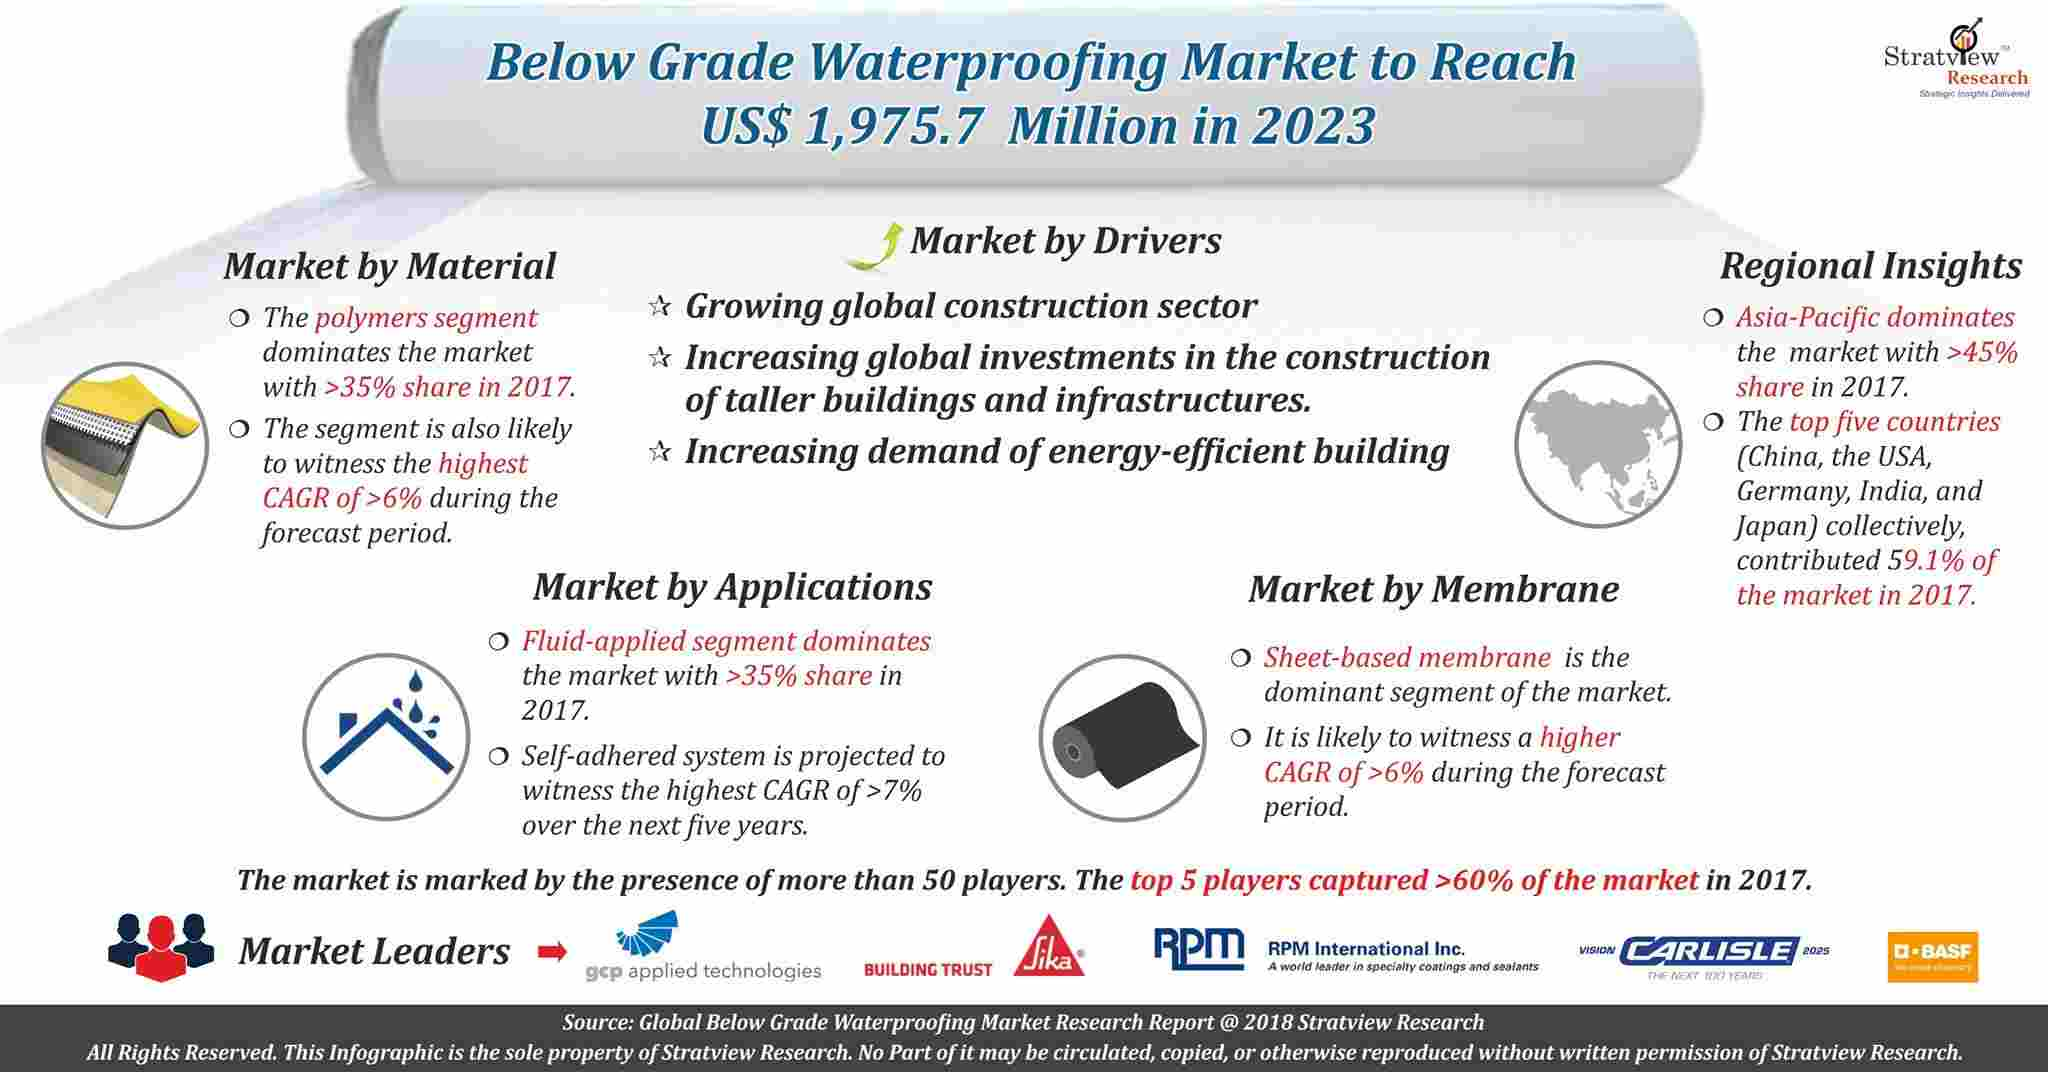 Below Grade Waterproofing Market